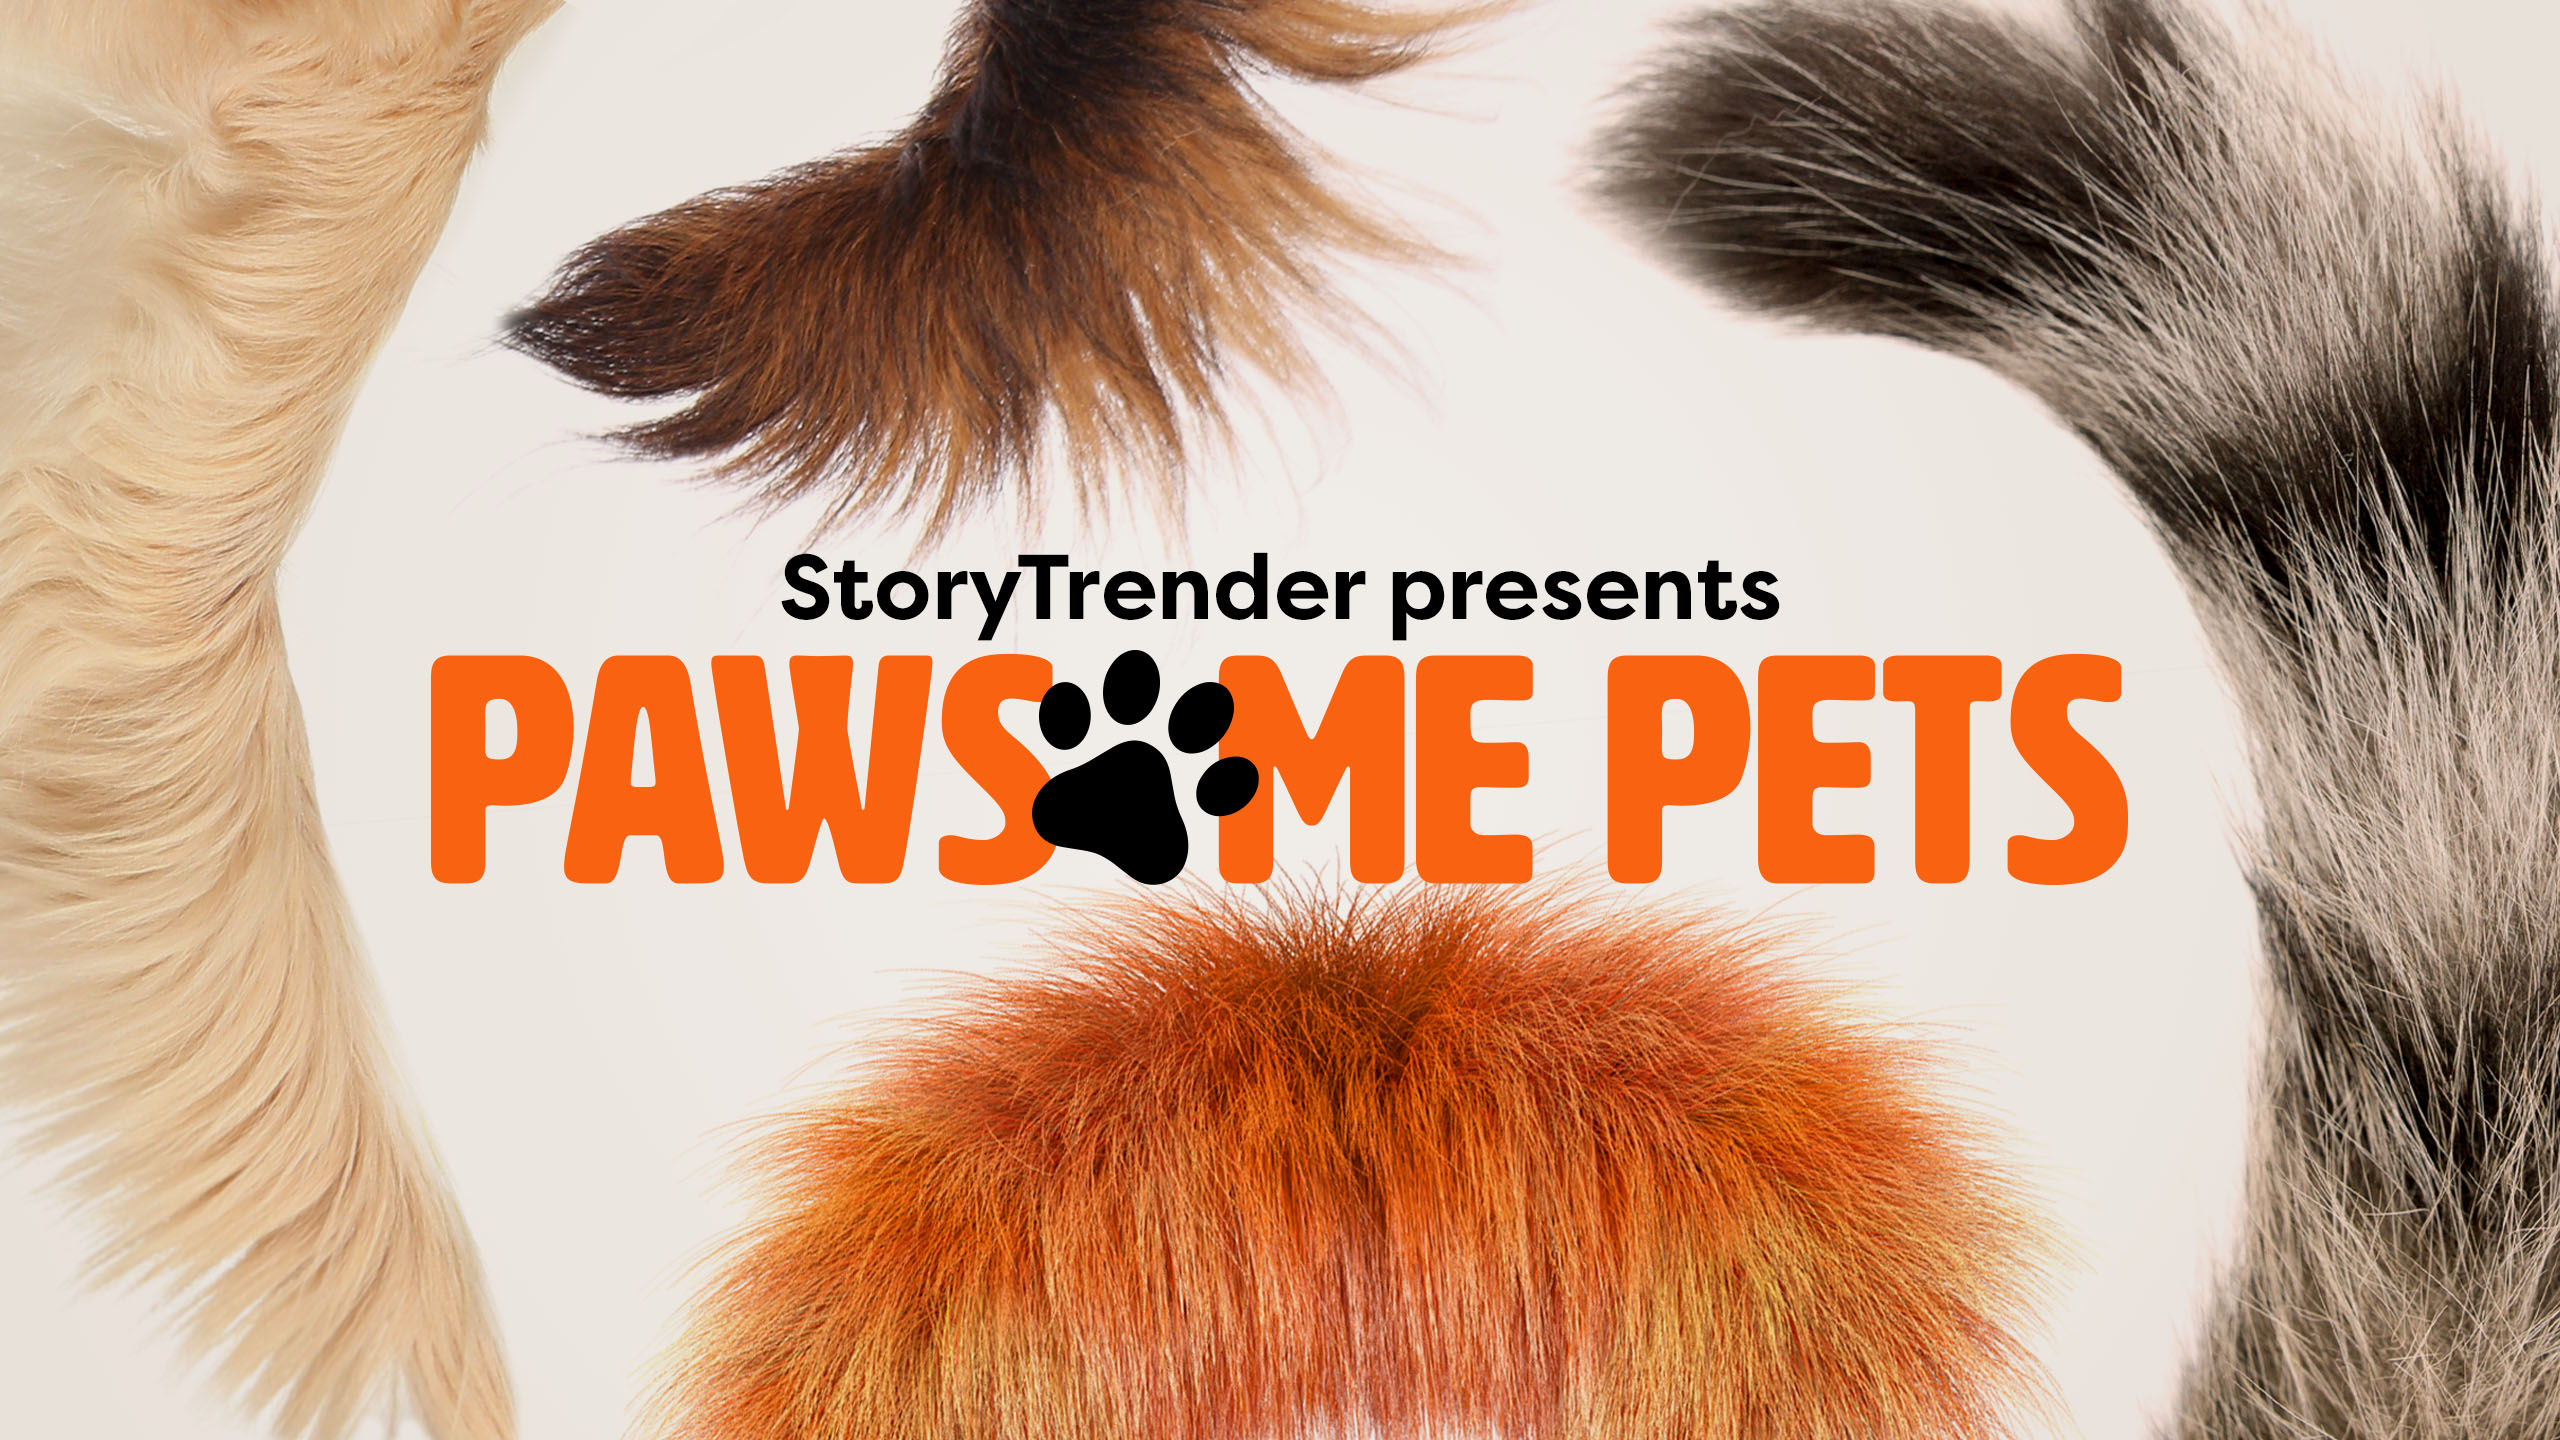 a variety of animal tails surround the title pawsome pets on a channel identity card